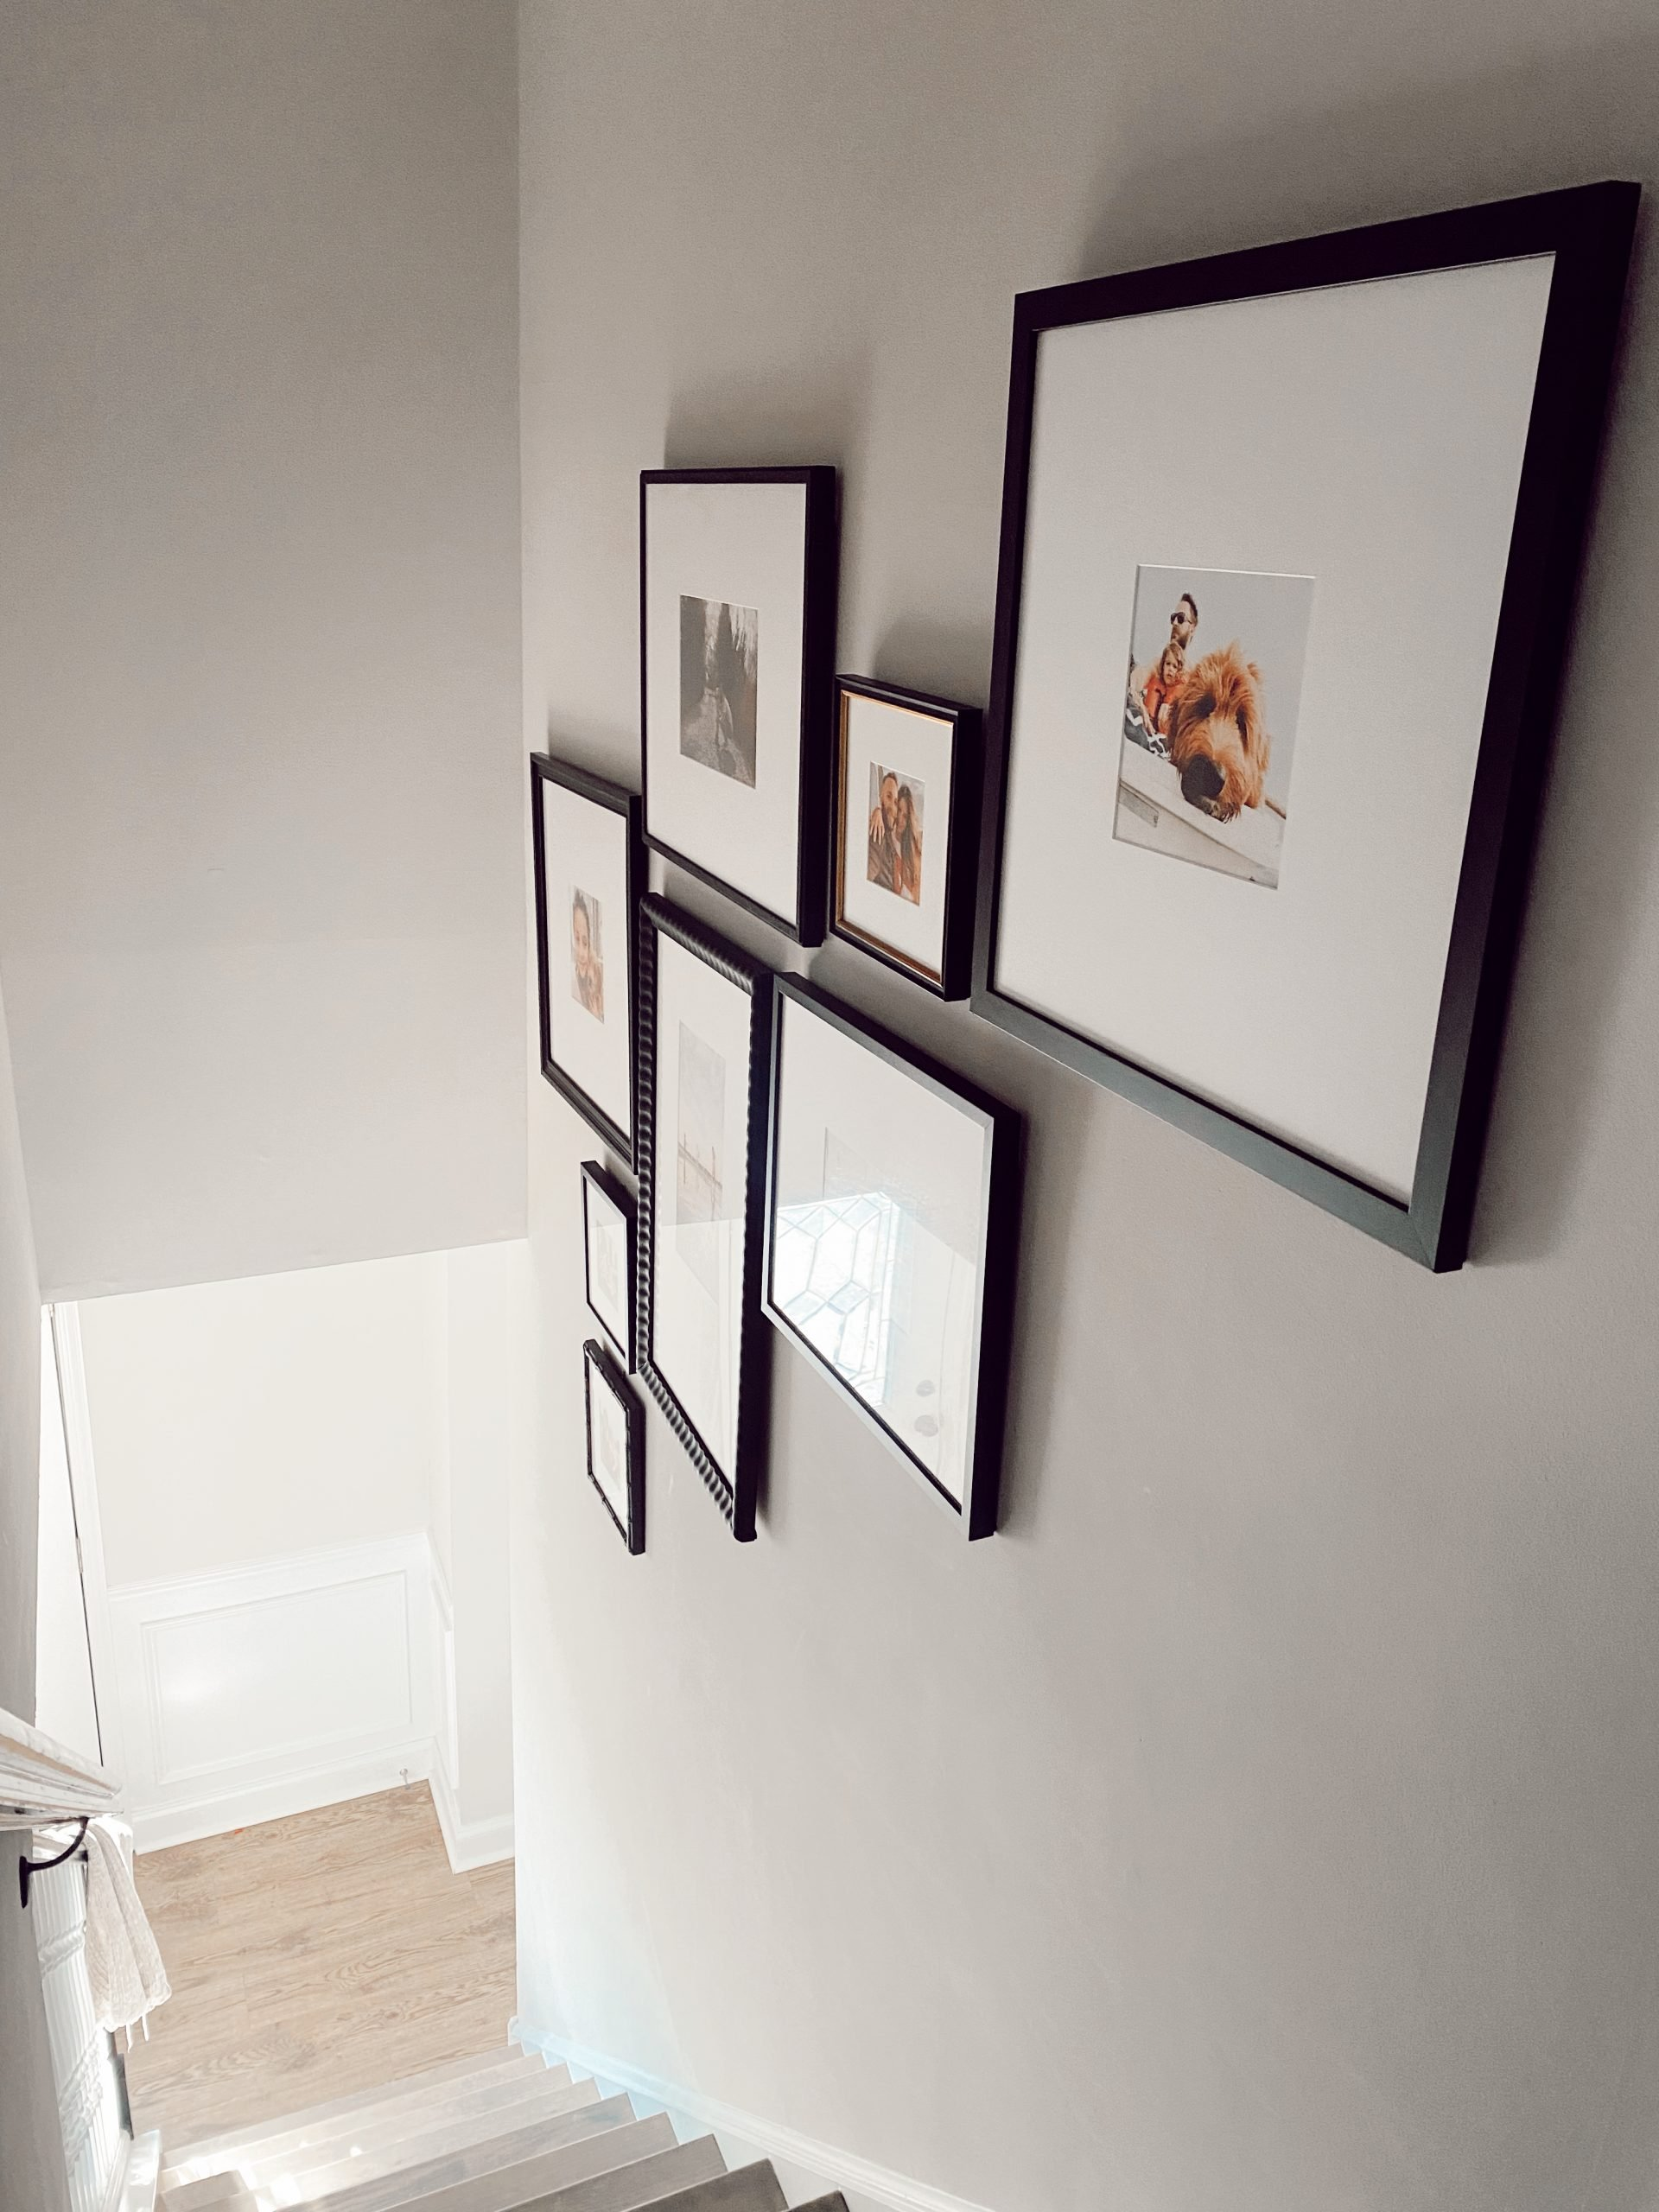 A gallery wall of photographs with black frames